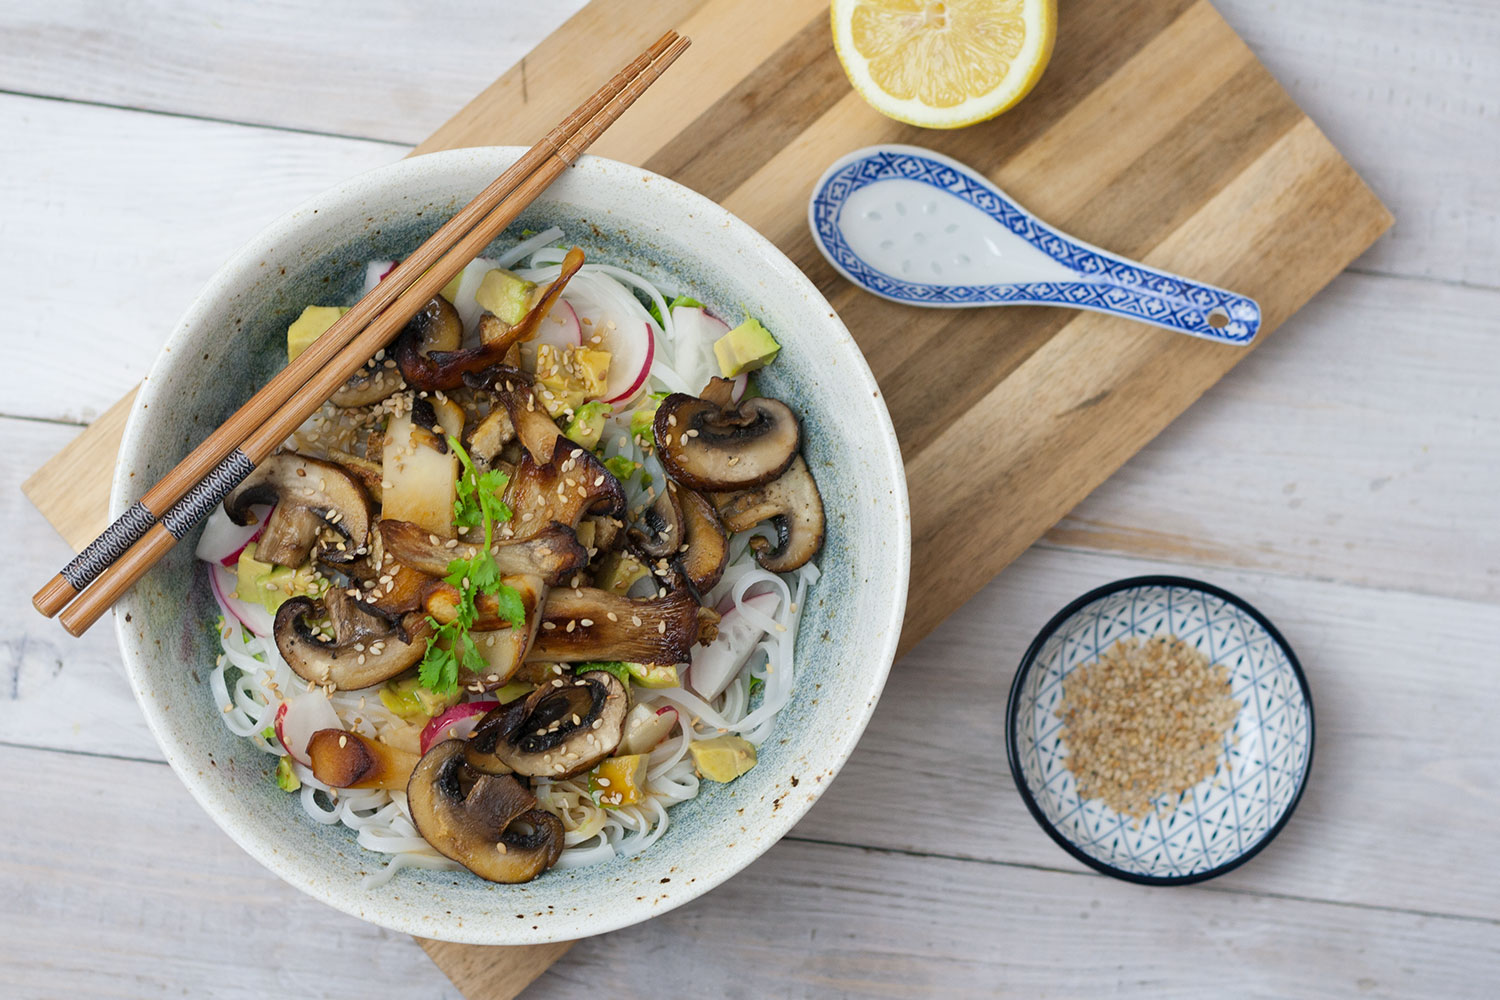 rice noodle salad with mushrooms and avocado | Reisnudelsalat mit Pilzen und Avokado